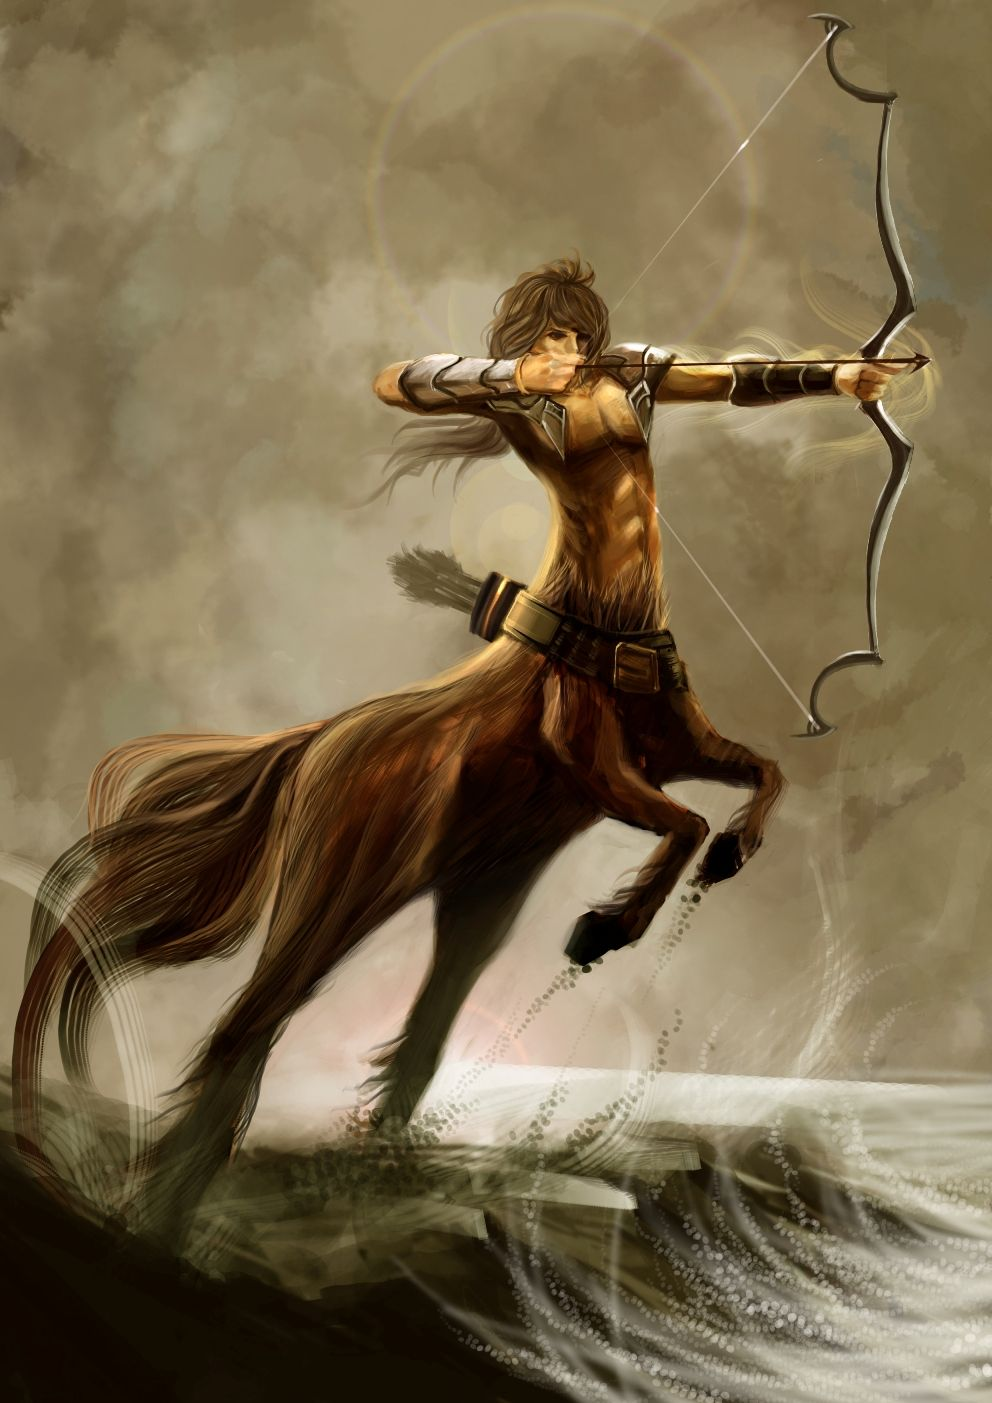 CENTAURS - One of a race of monsters having the head, arms ... - photo#14